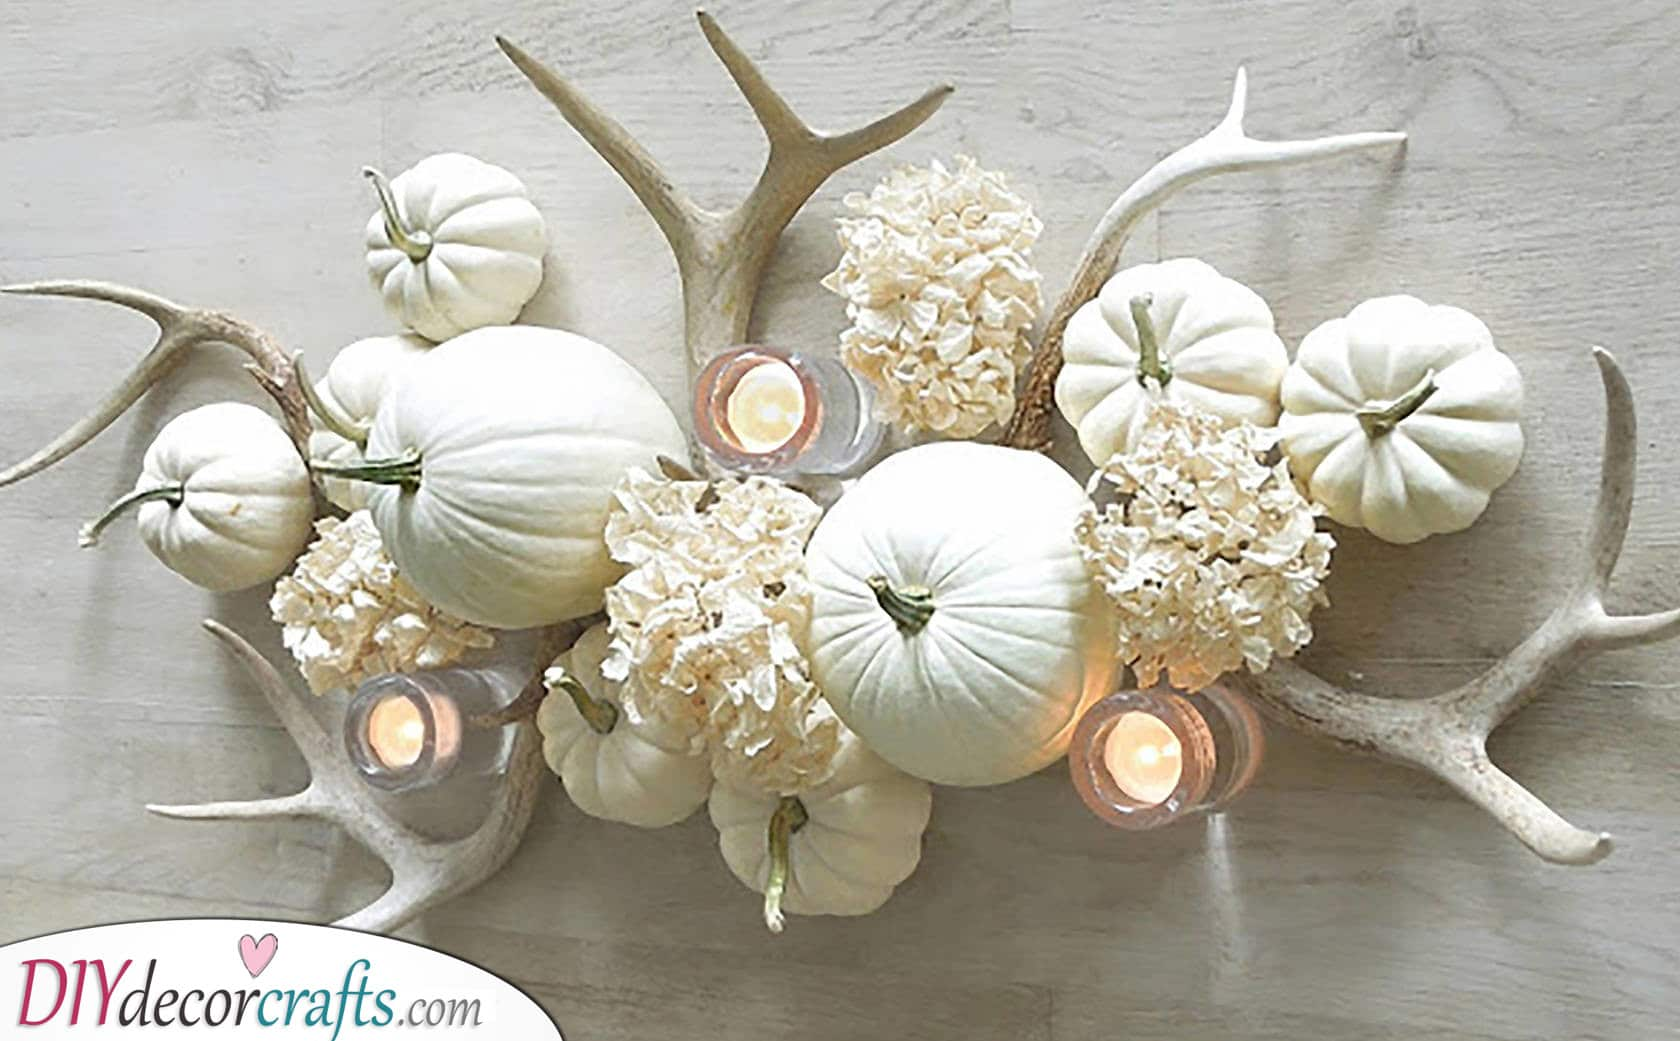 A White Arrangement - Add Some Antlers